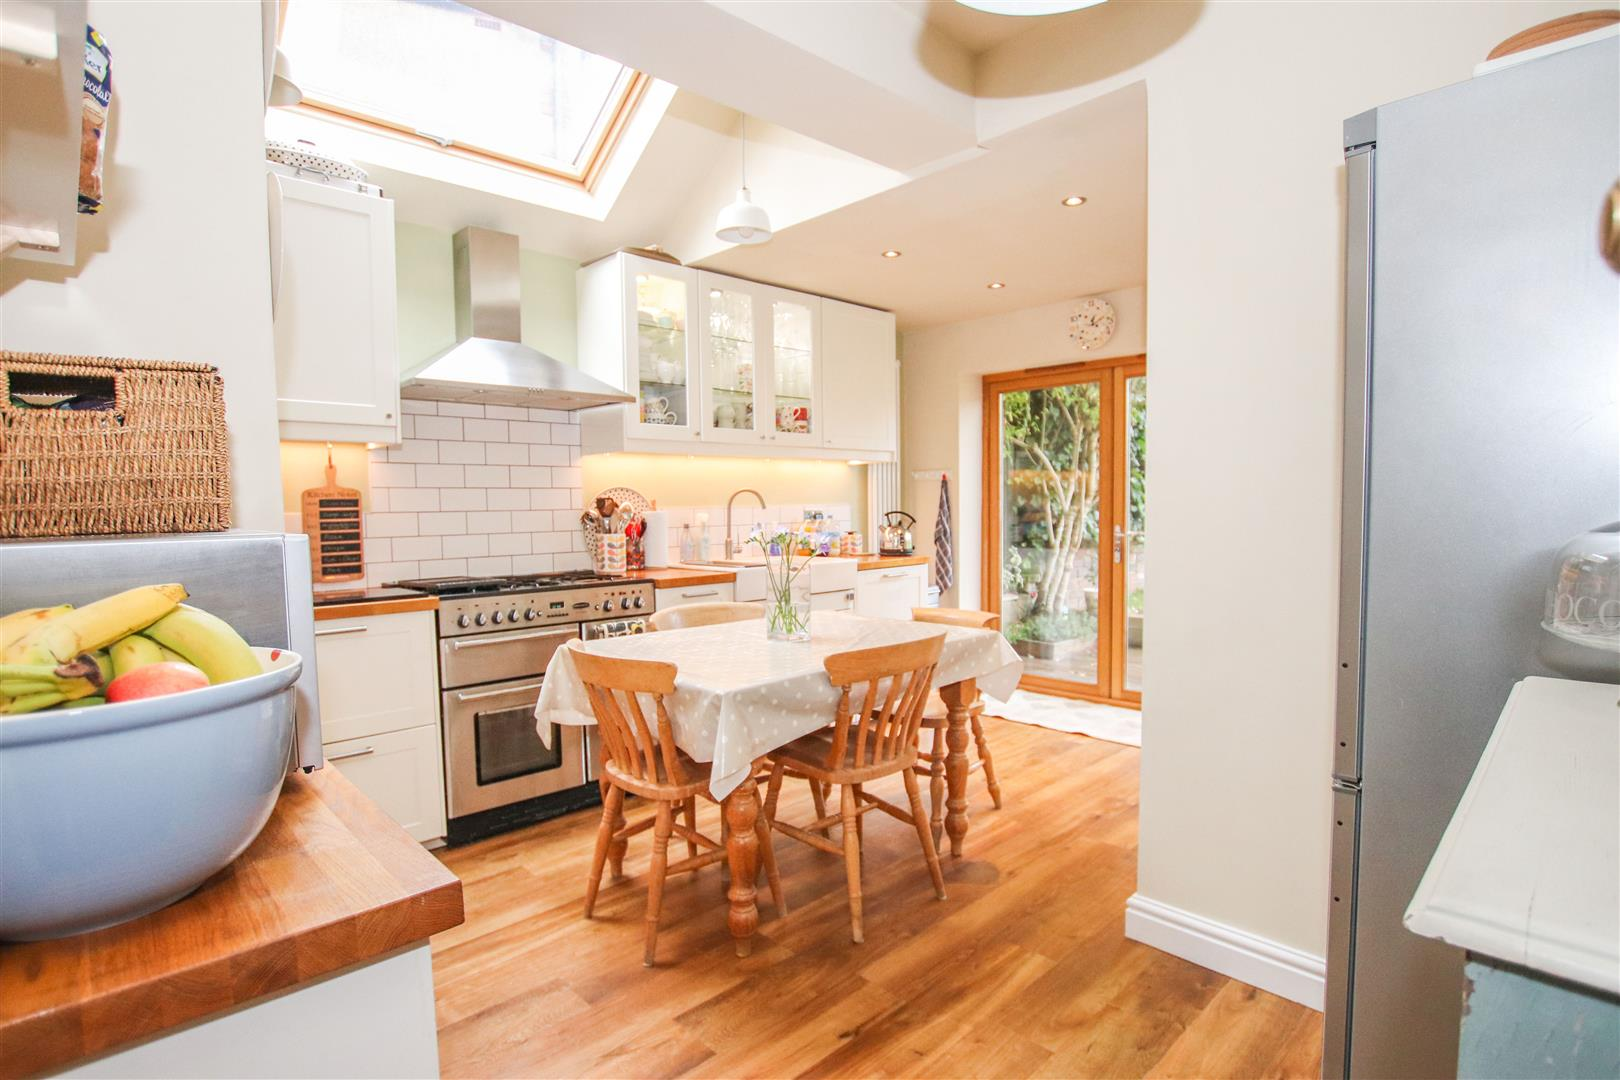 EXTENDED FITTED KITCHEN / BREAKFAST ROOM